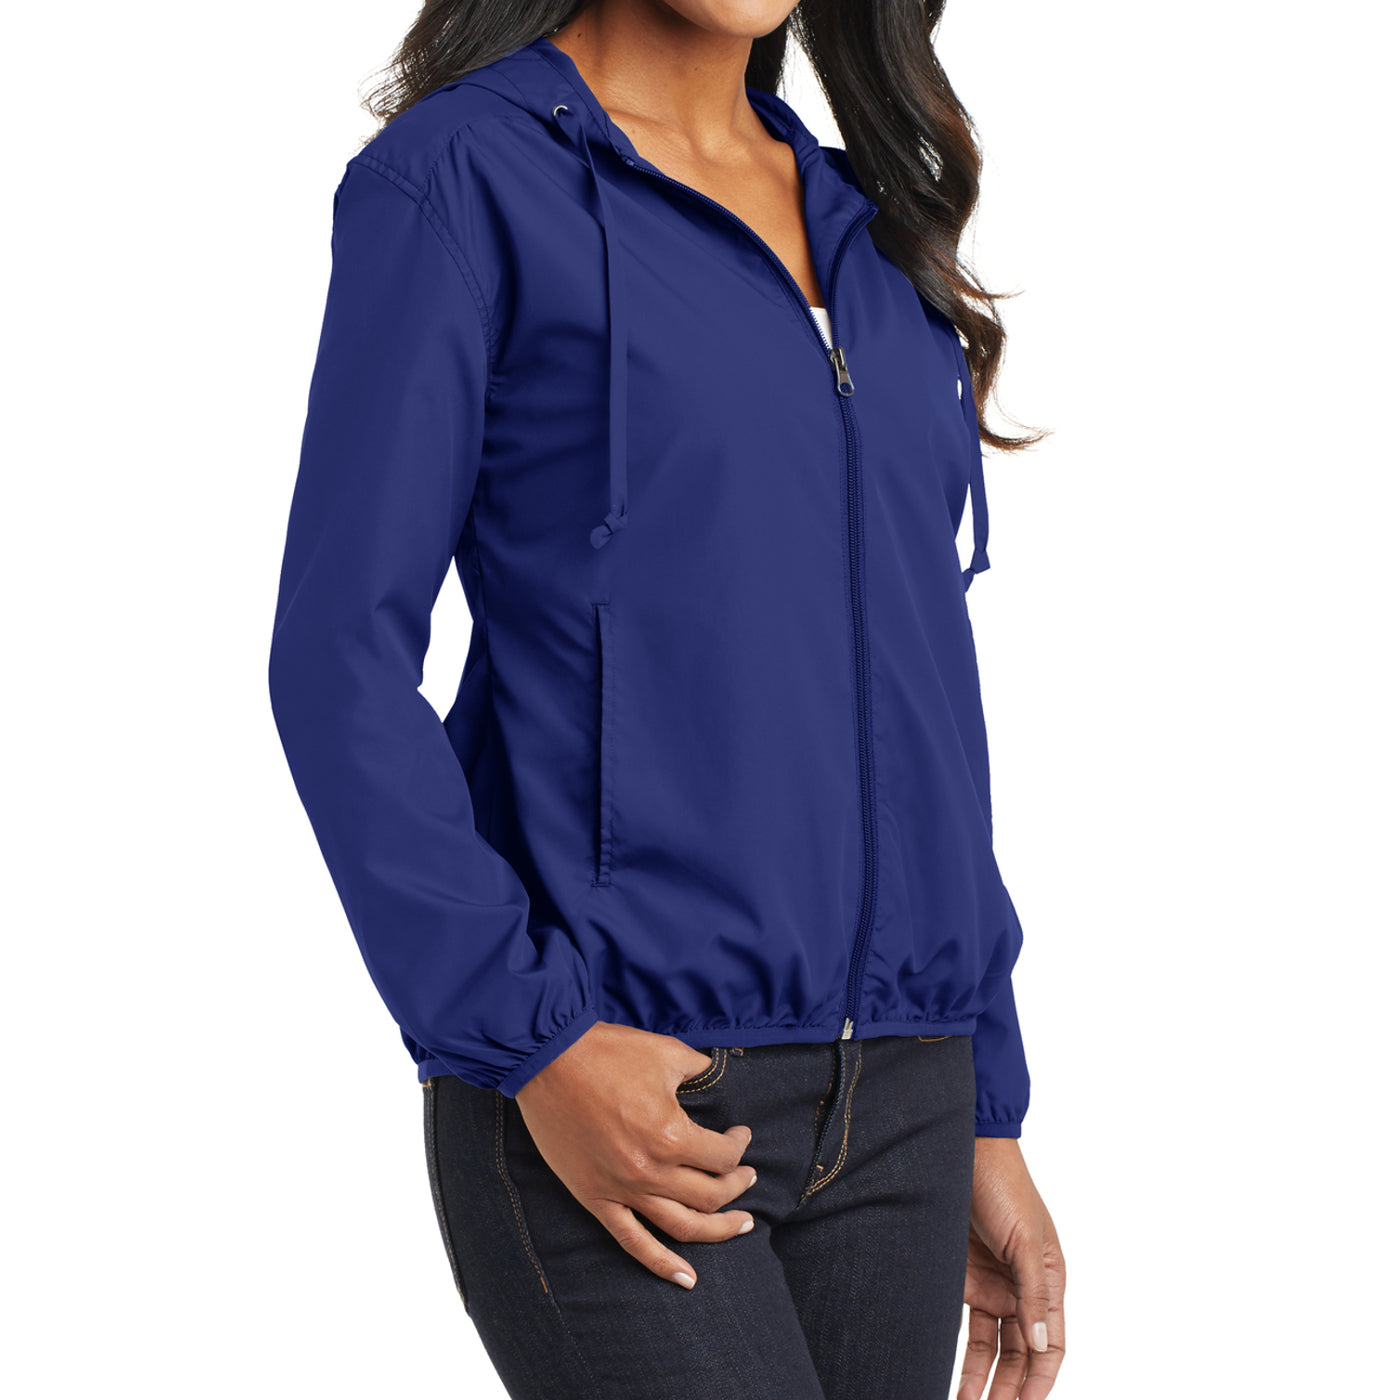 Women's Hooded Essential Jacket - Mediterranean Blue - Side